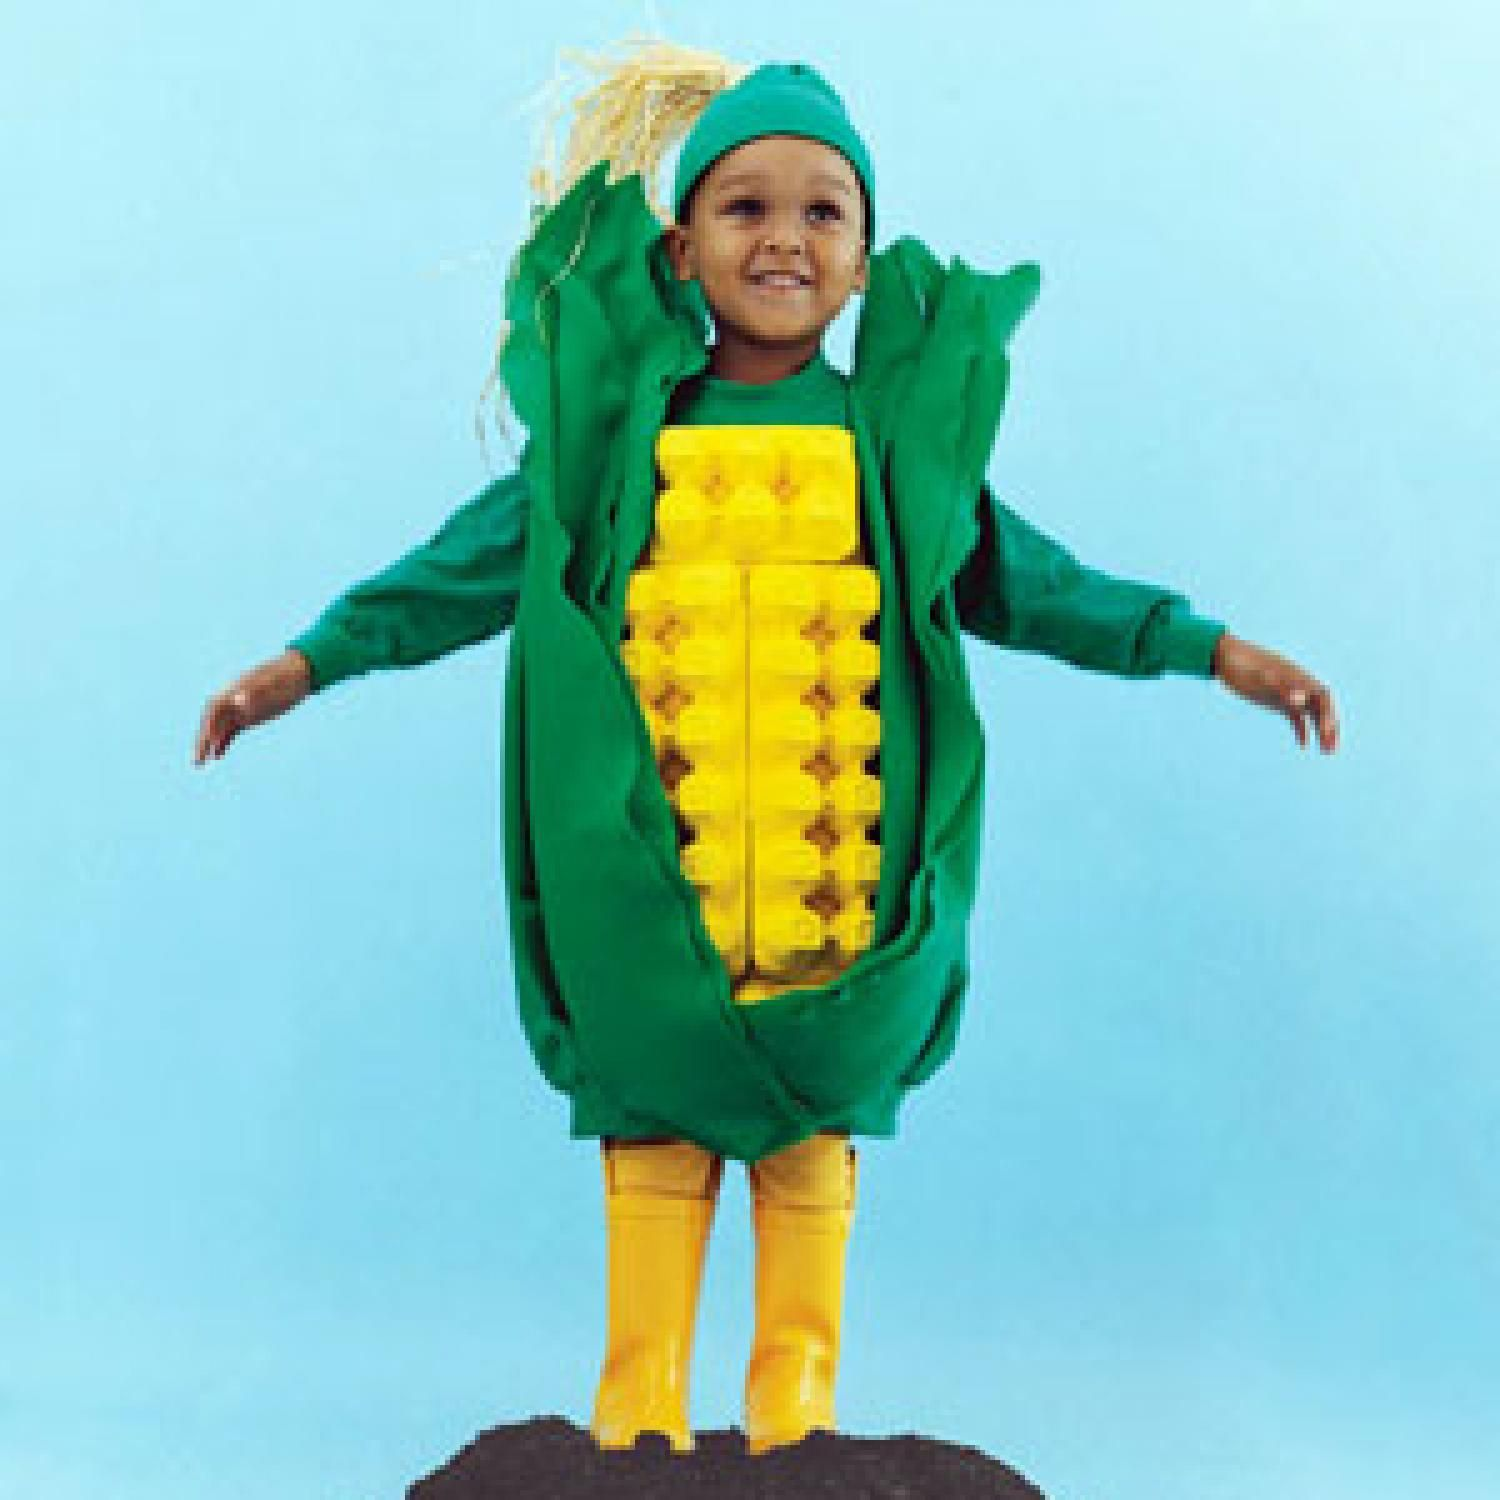 corn on the cob costume - Meteorologist Halloween Costume